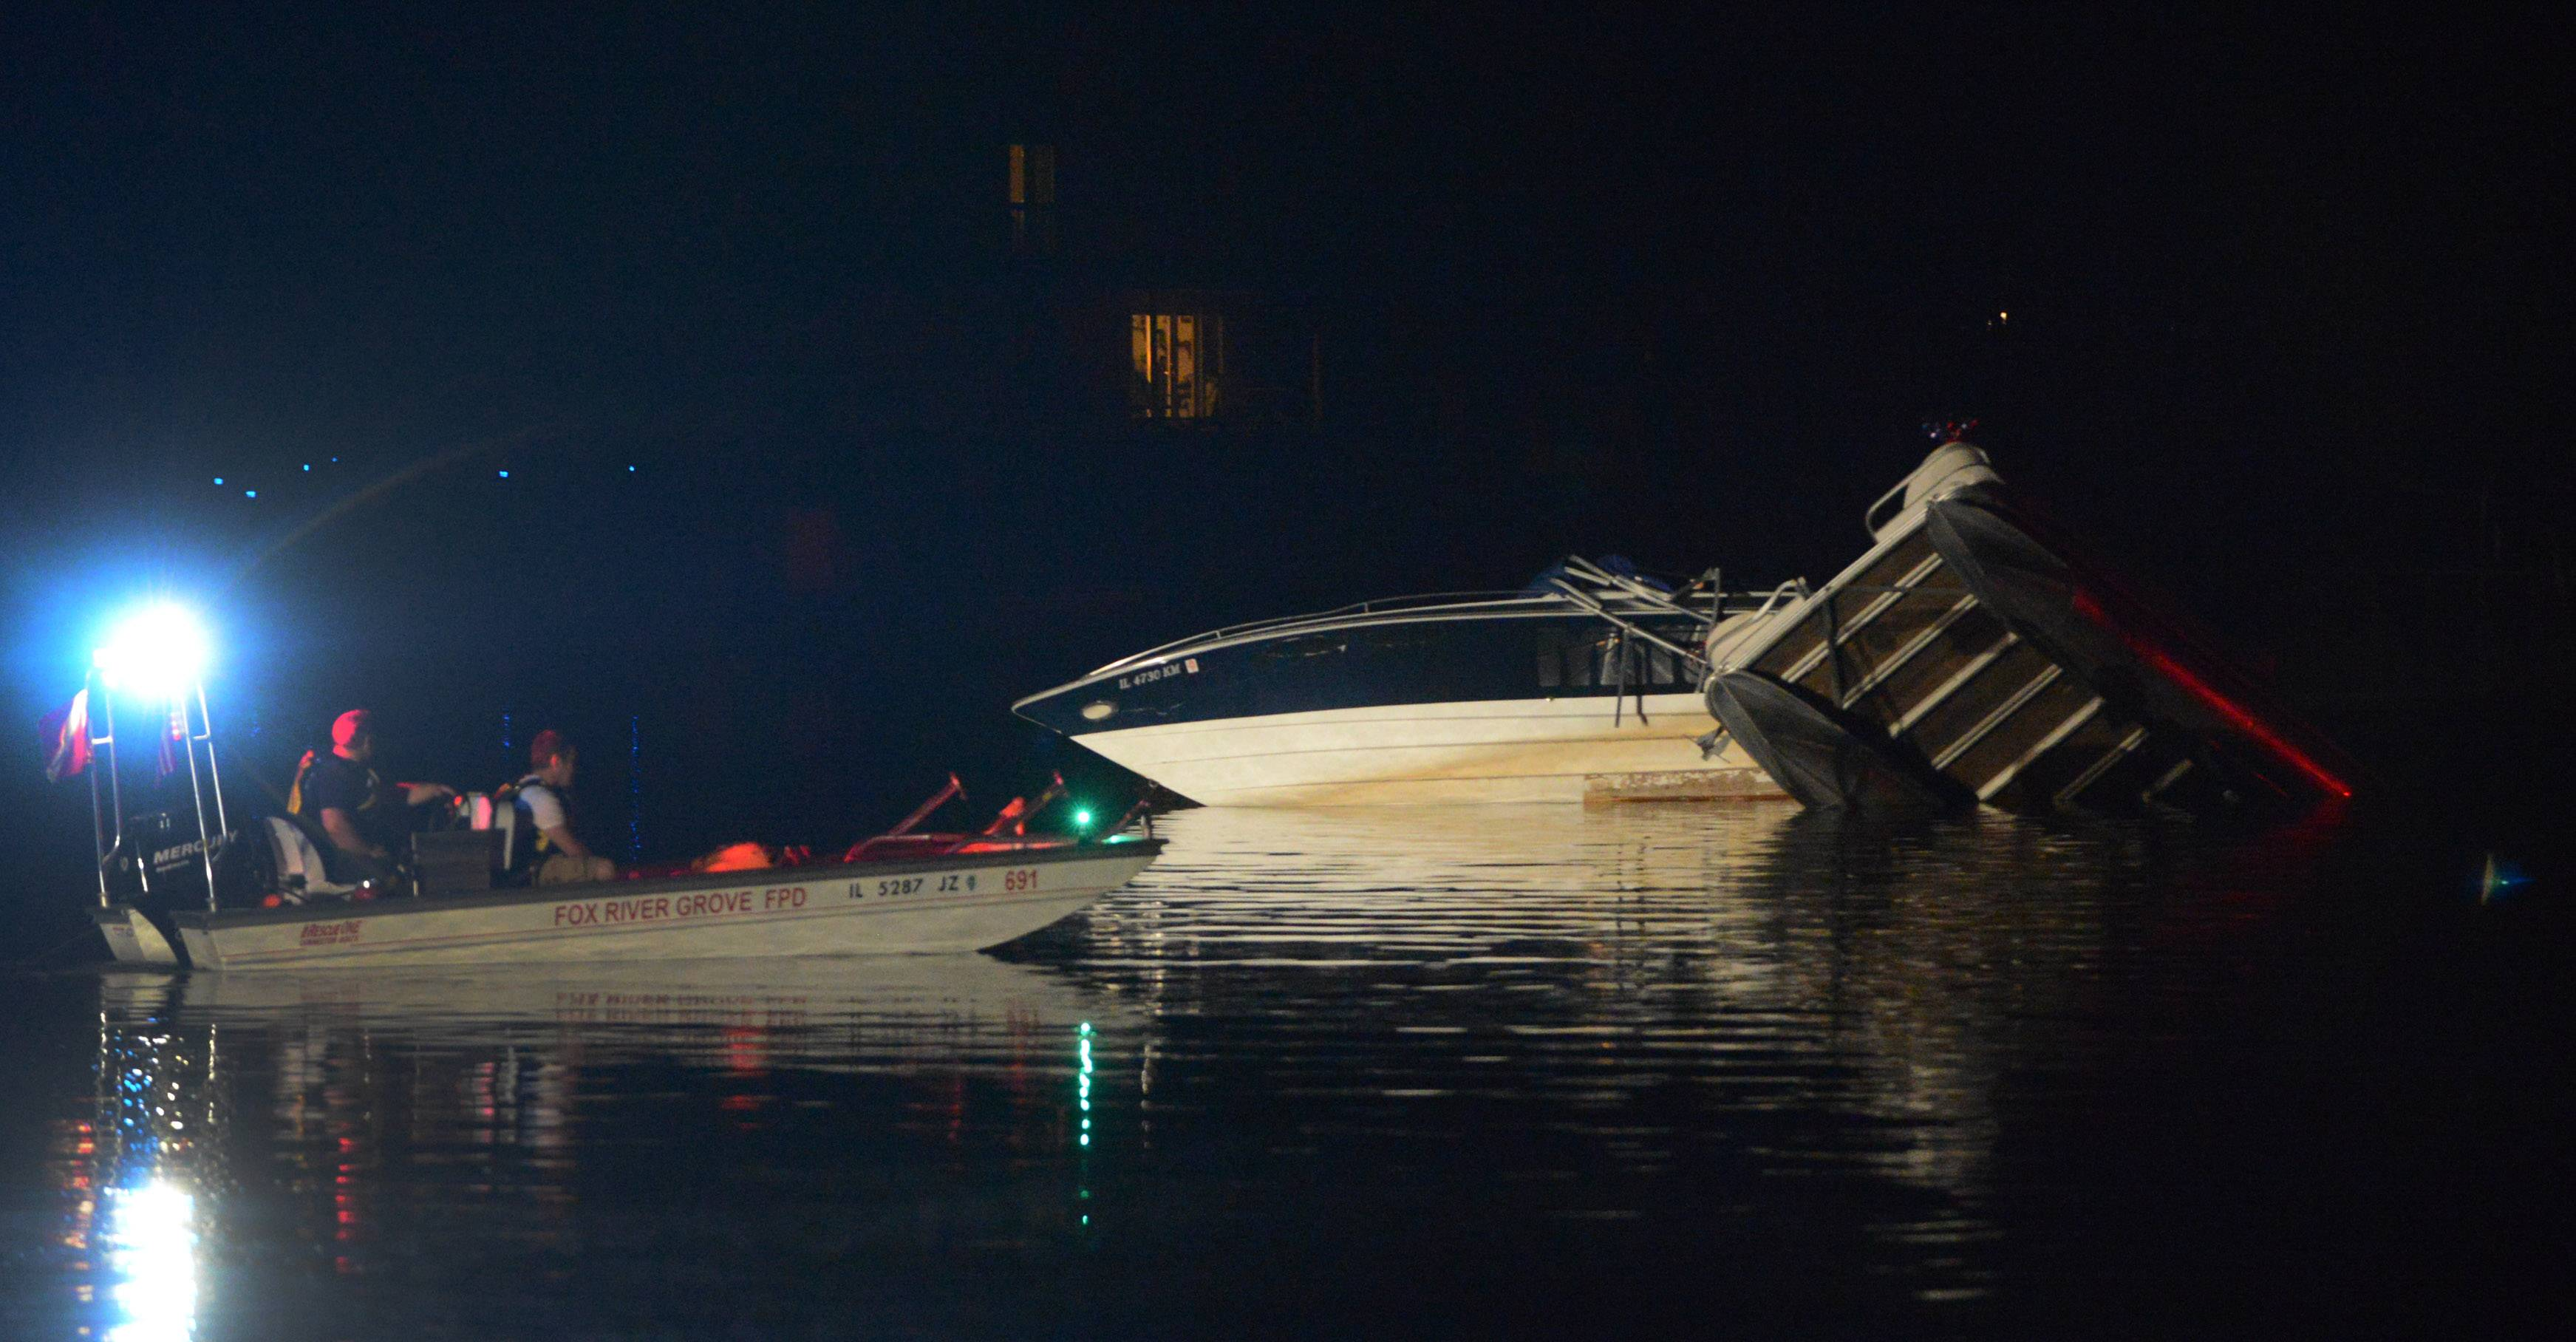 Police: Alcohol a factor in Fourth of July Fox River boat crash